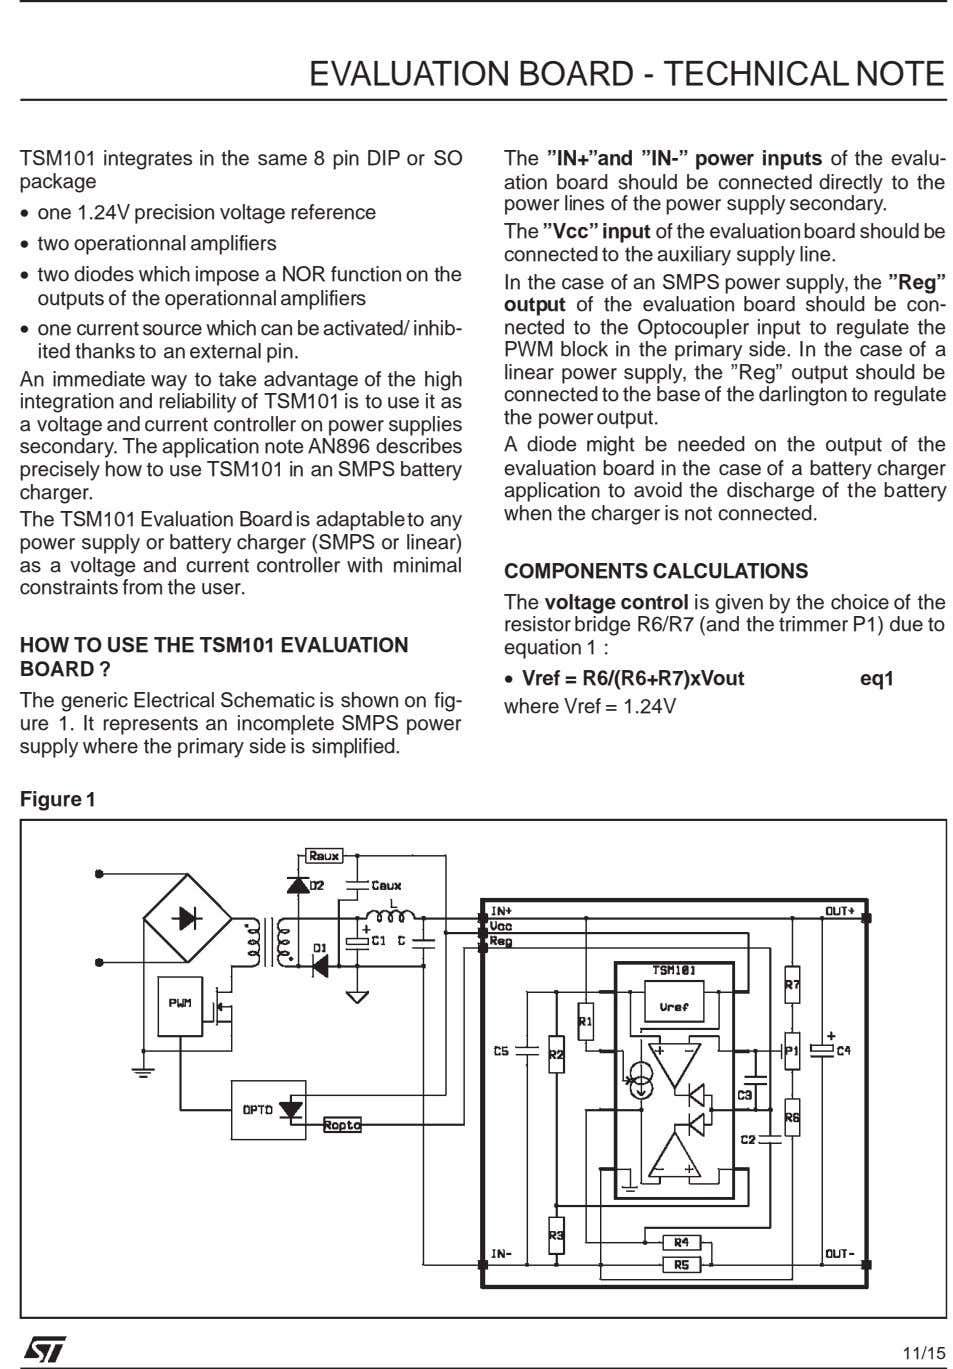 EVALUATION BOARD - TECHNICAL NOTE TSM101 integrates in the same 8 pin DIP or SO